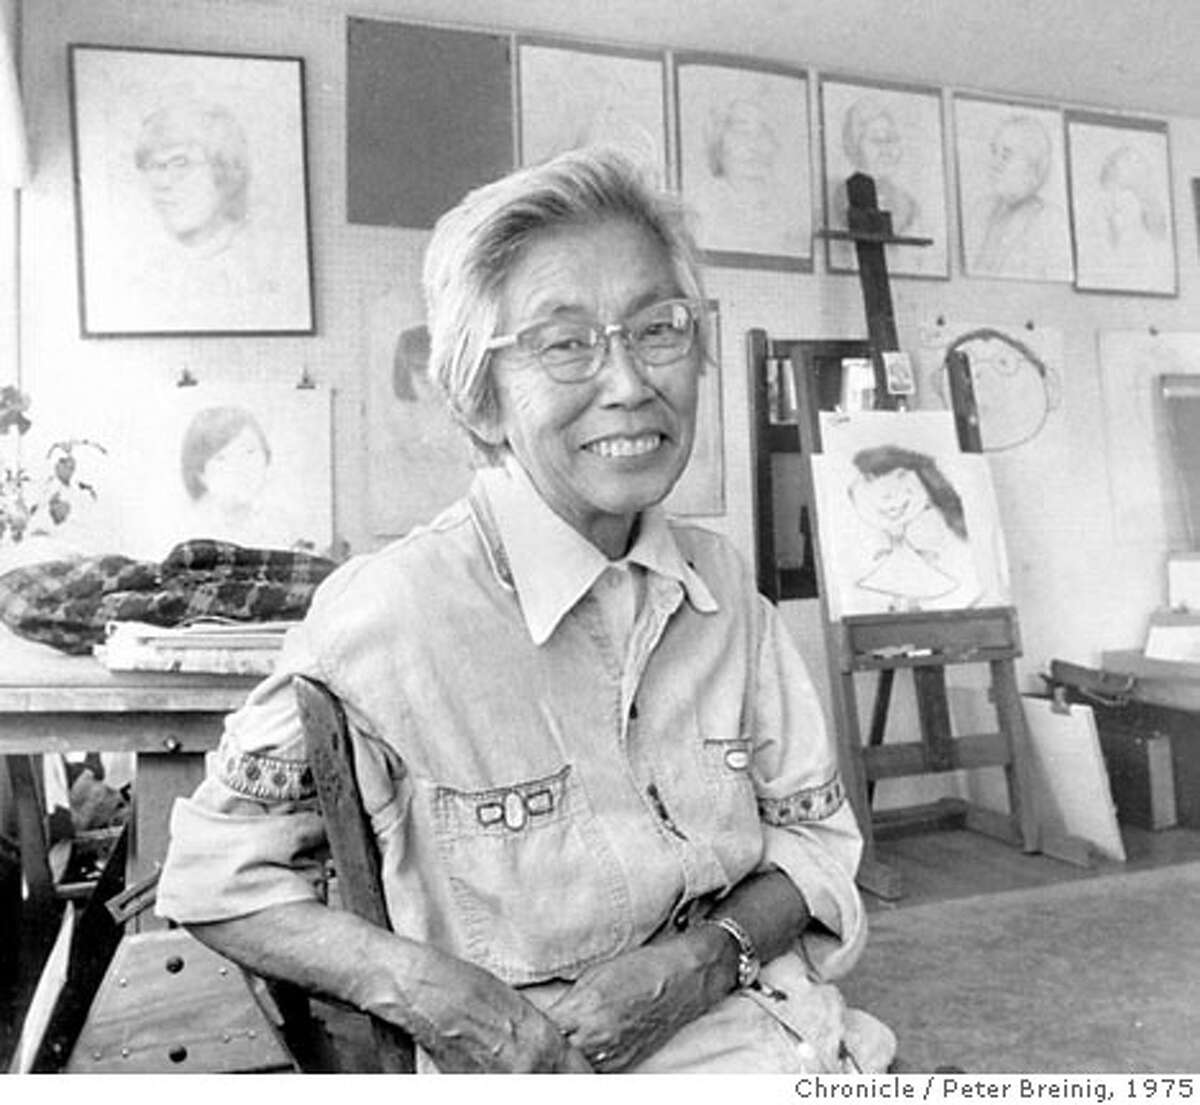 """IWAMATSU18_SD.jpg Mitsu Yashima, America's Tokyo Rose, a San Francisco woman who worked at the OSS in WWII. She is the focus of a sidebar to a story about Sala Iwamatsu, who stars in """"After The War"""" at ACT, a play by Philip Gotanda. Peter Breinig/ San Francisco Chronicle File Photo 1975"""